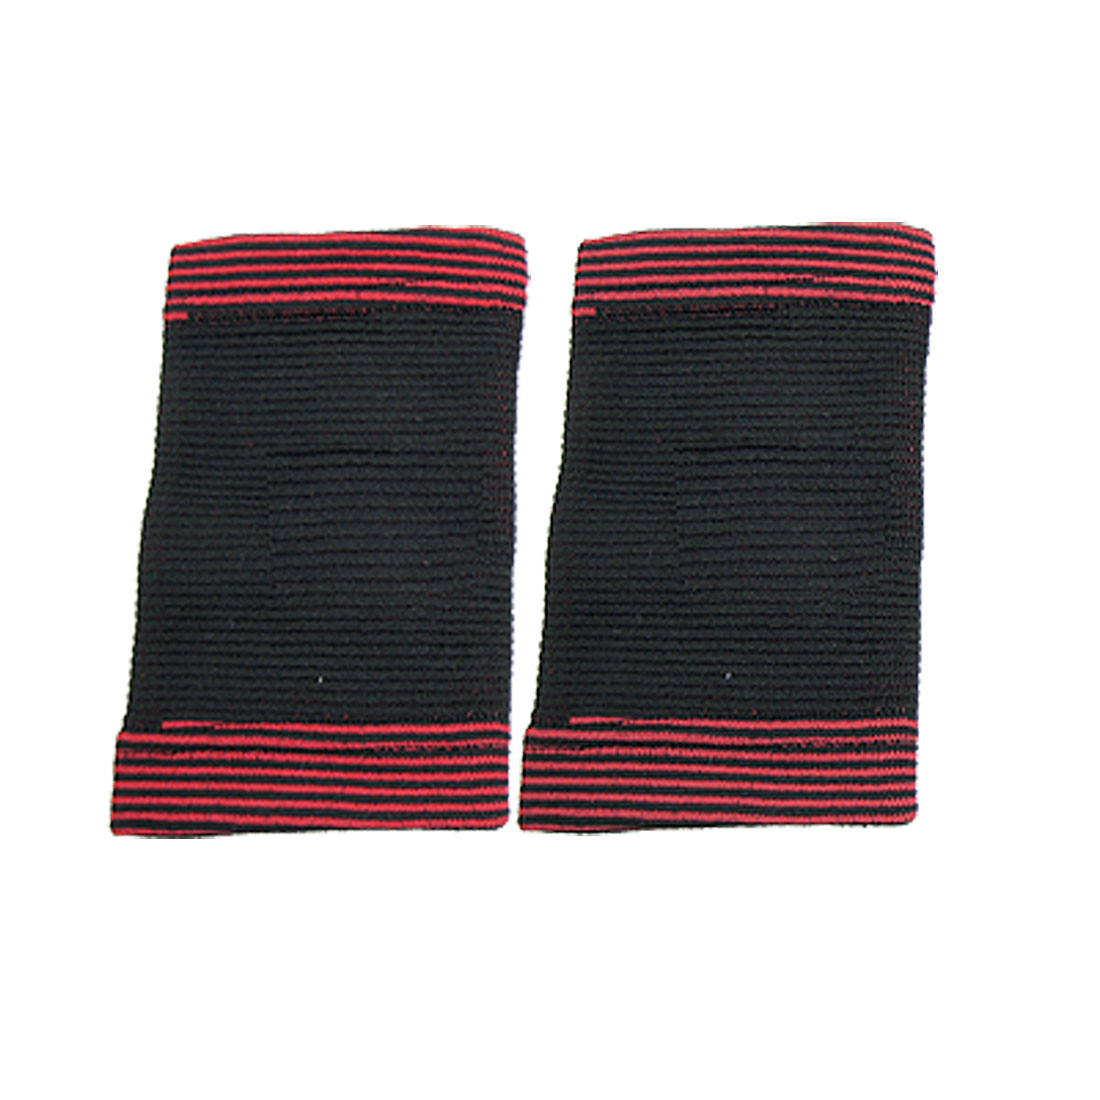 2 Pcs Size L Black Red Stripe Stretchy Band Wrist Support Protector